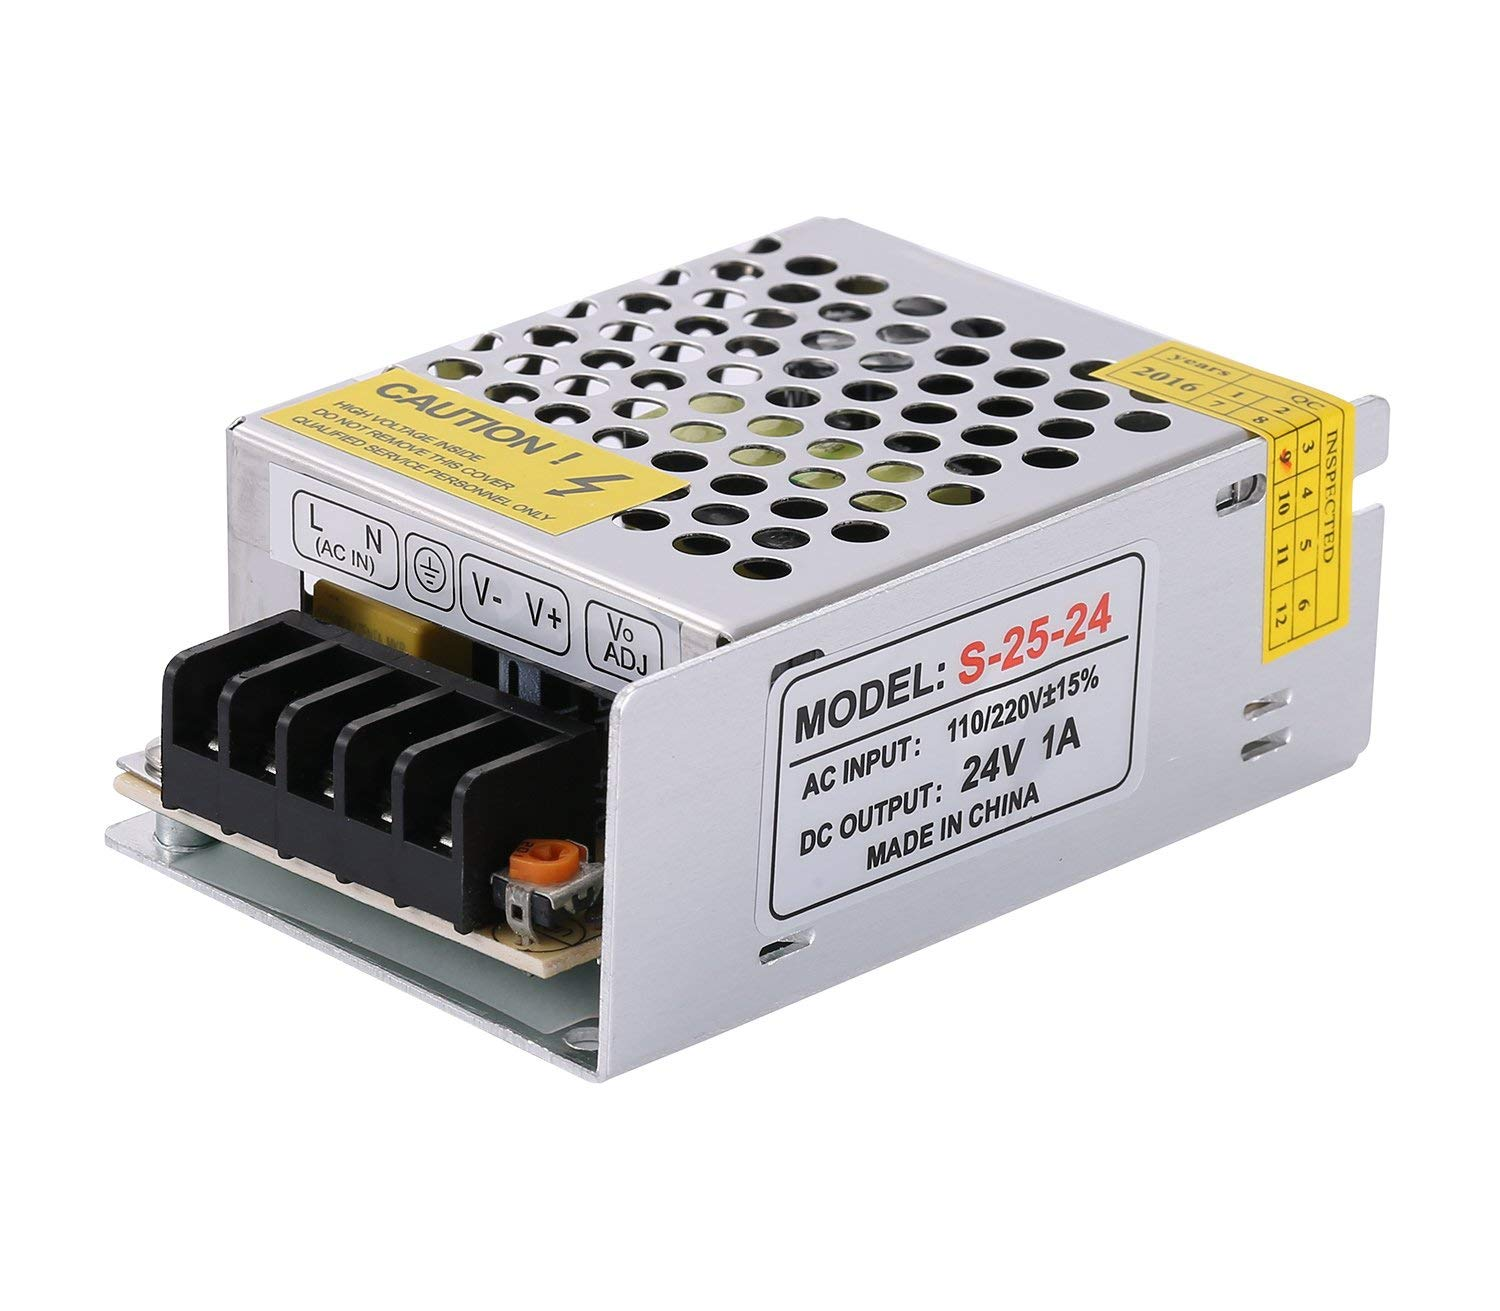 COOLM 24V 1A 25W DC Universal Regulated Switching Power Supply AC to DC 24V 1Amps